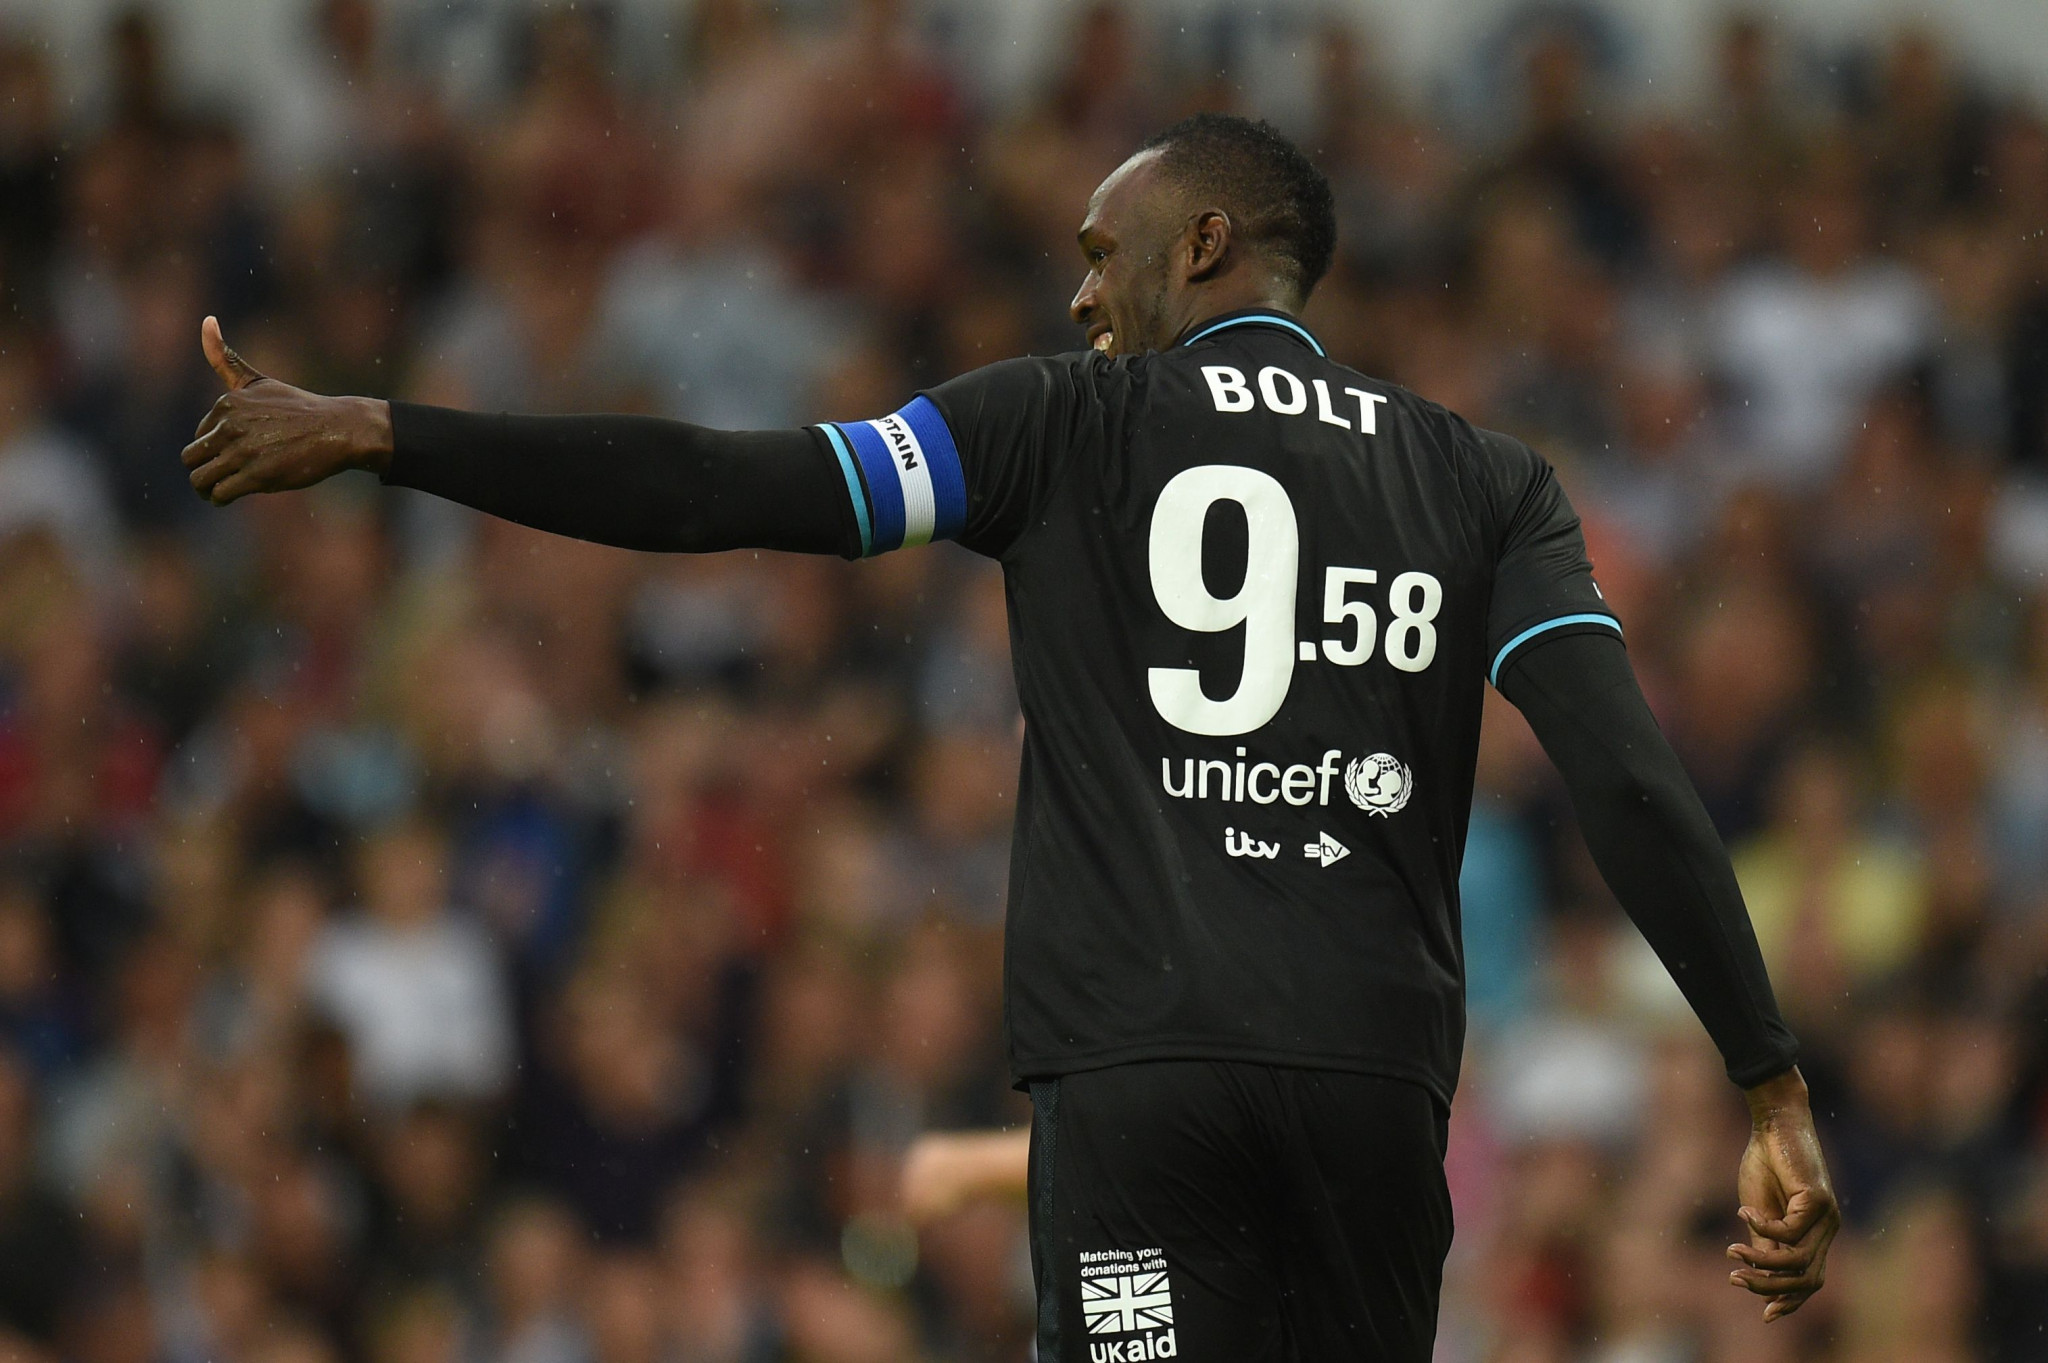 Usain Bolt in action during the Soccer Aid charity match in Manchester ©Getty Images